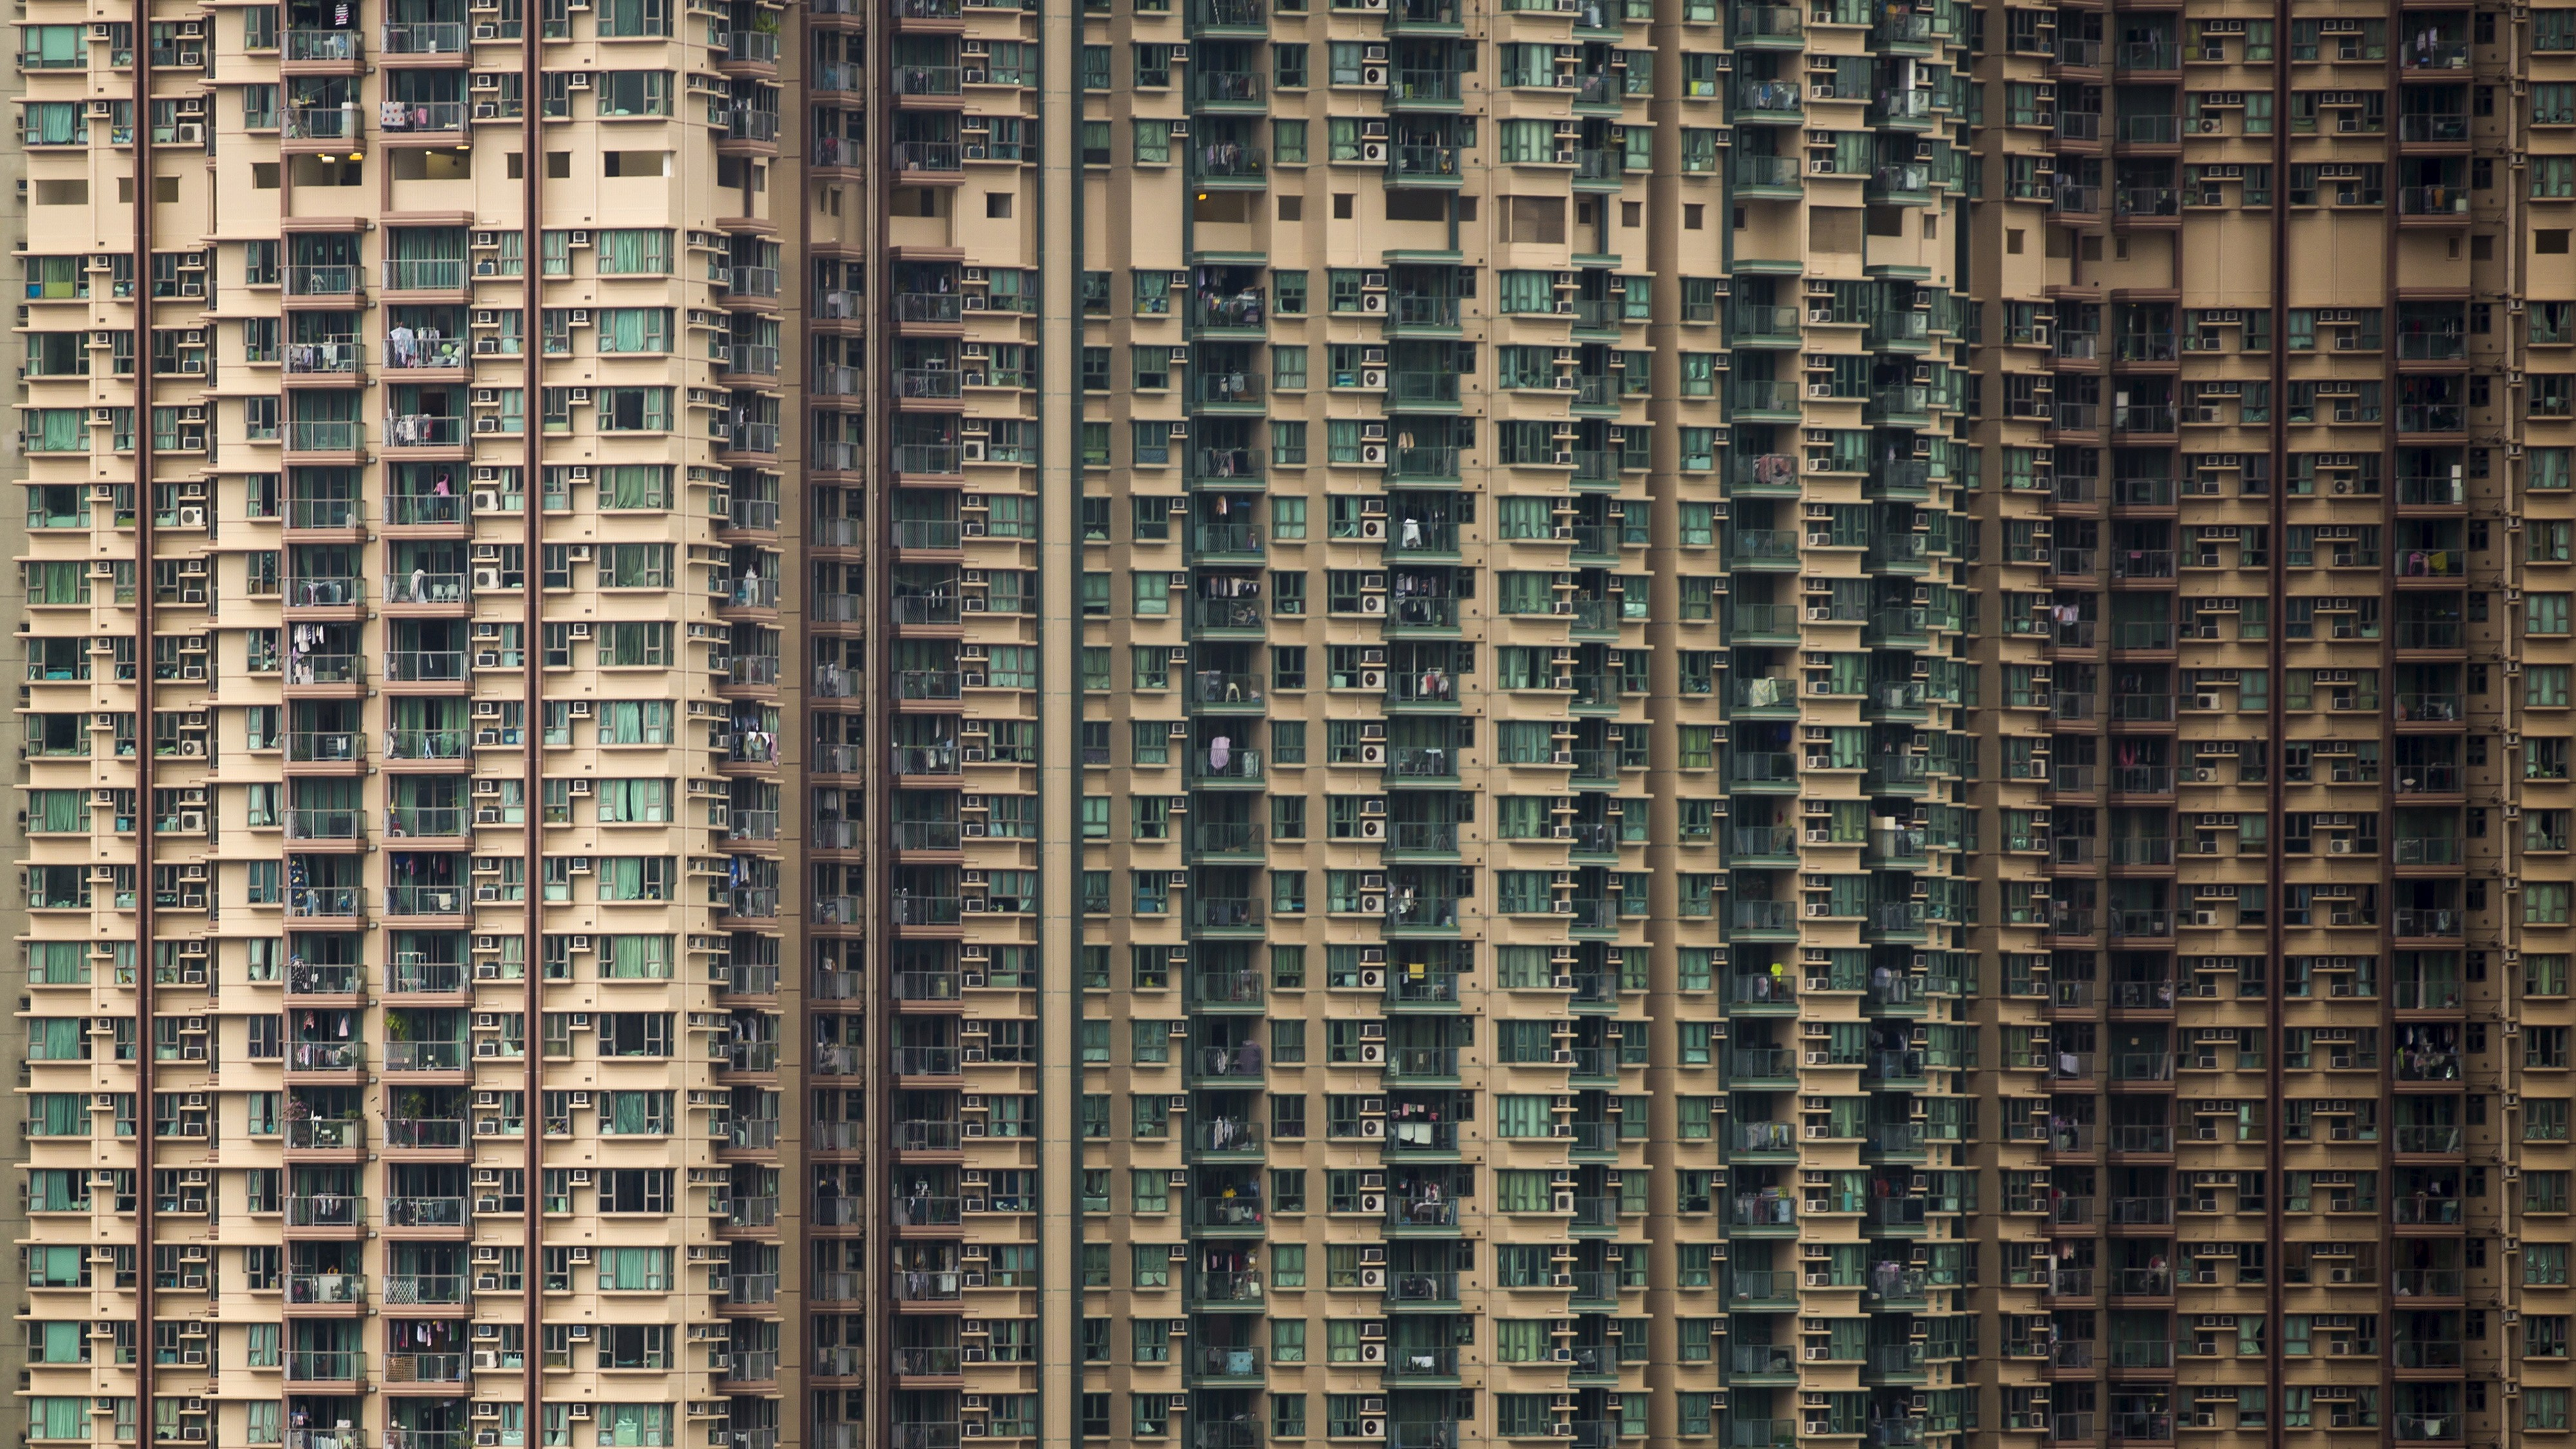 Private housing blocks are seen in Hong Kong, China December 15, 2015. Hong Kong is bracing for greater economic challenges as the prospect of a new cycle of interest rate rises drives fears of capital outflows that could put further pressure on the Asian financial hub. Hong Kong's property market, which has seen prices more than double since 2008, had already slowed in anticipation of a local rate hike, and analysts say a further slowdown will depend on China, which is facing its weakest growth in 25 years. Picture taken December 15. REUTERS/Tyrone Siu  - RTX1Z1I6